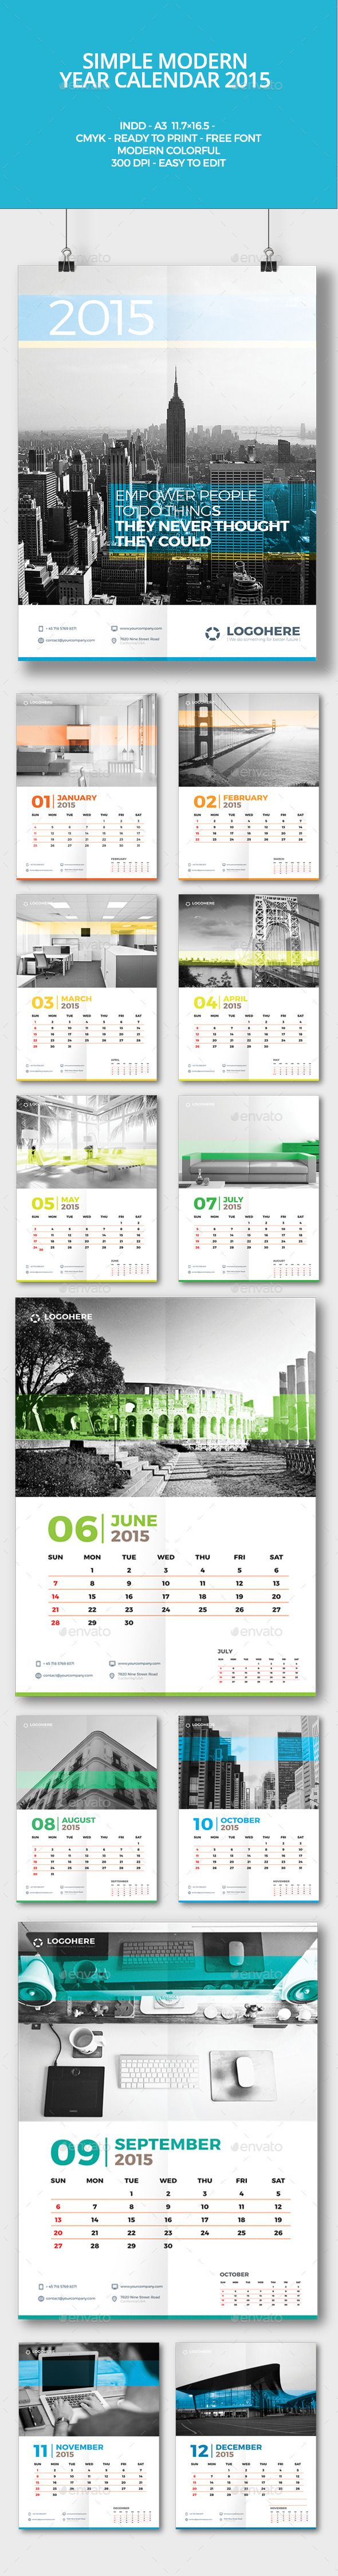 Best Calendars Images On   Calendar Design Calendar